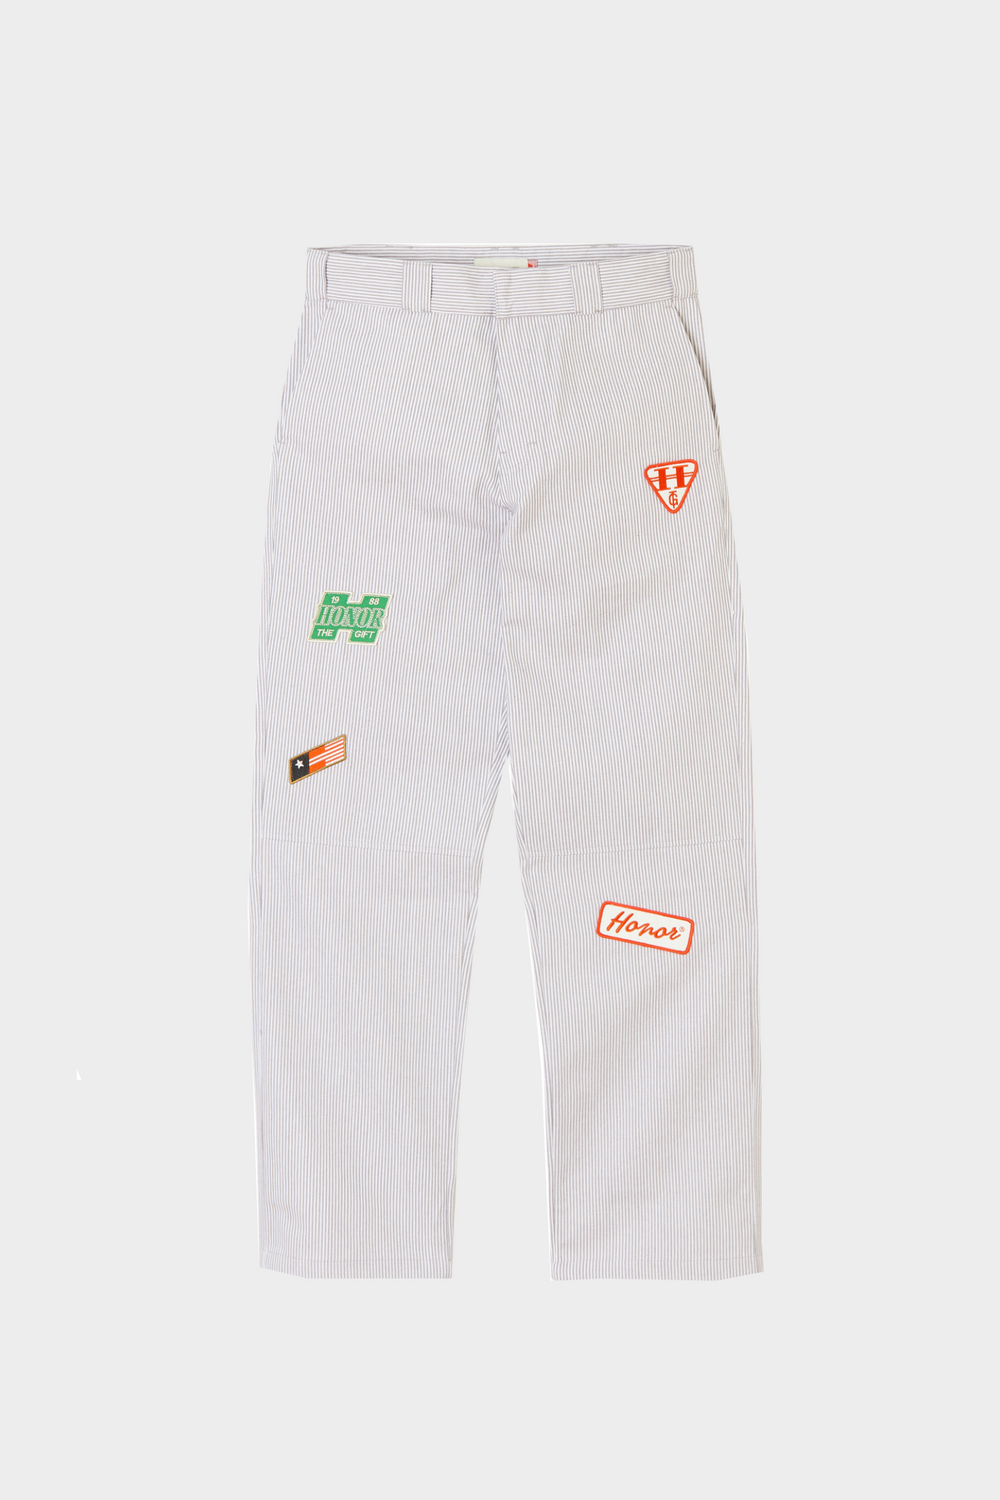 MECHANIC UNIFORM PANT